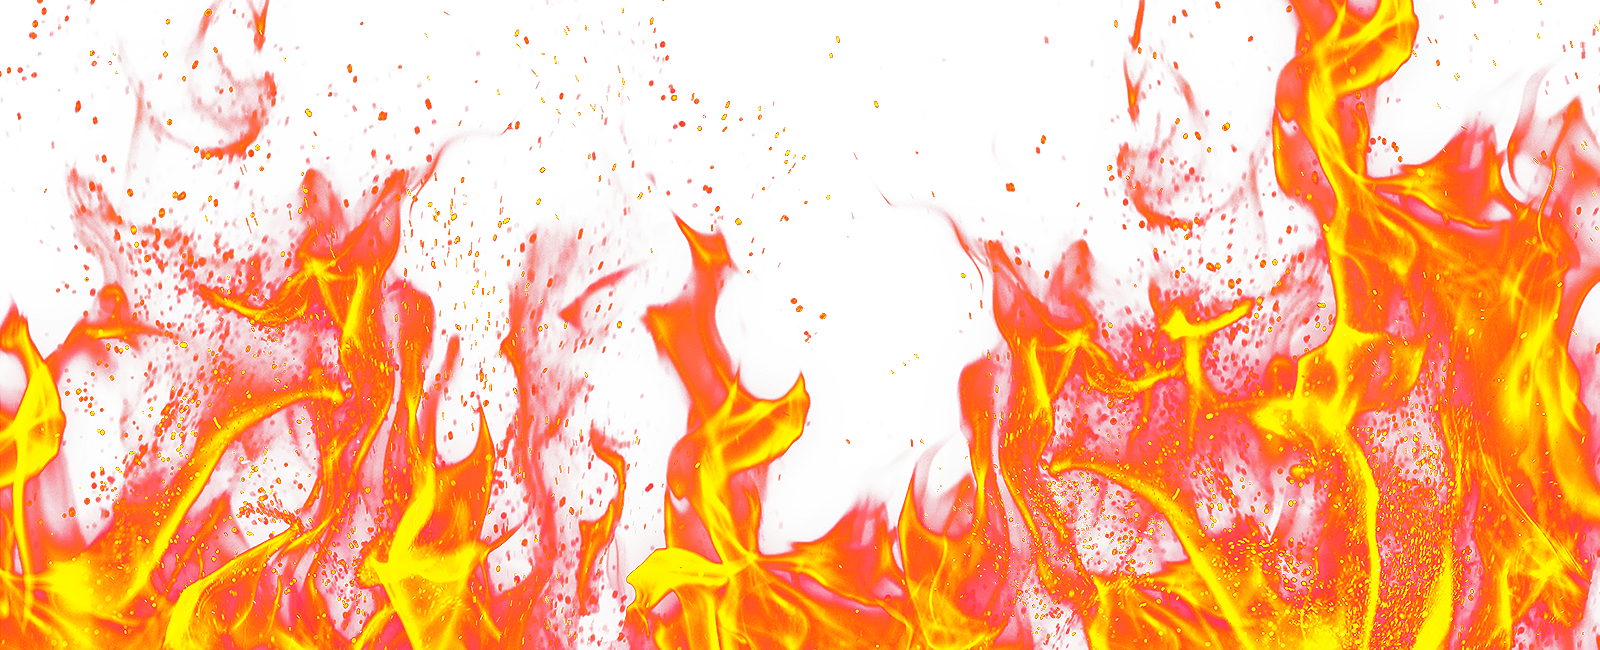 Png fire. Flames icon clipart transparentpng